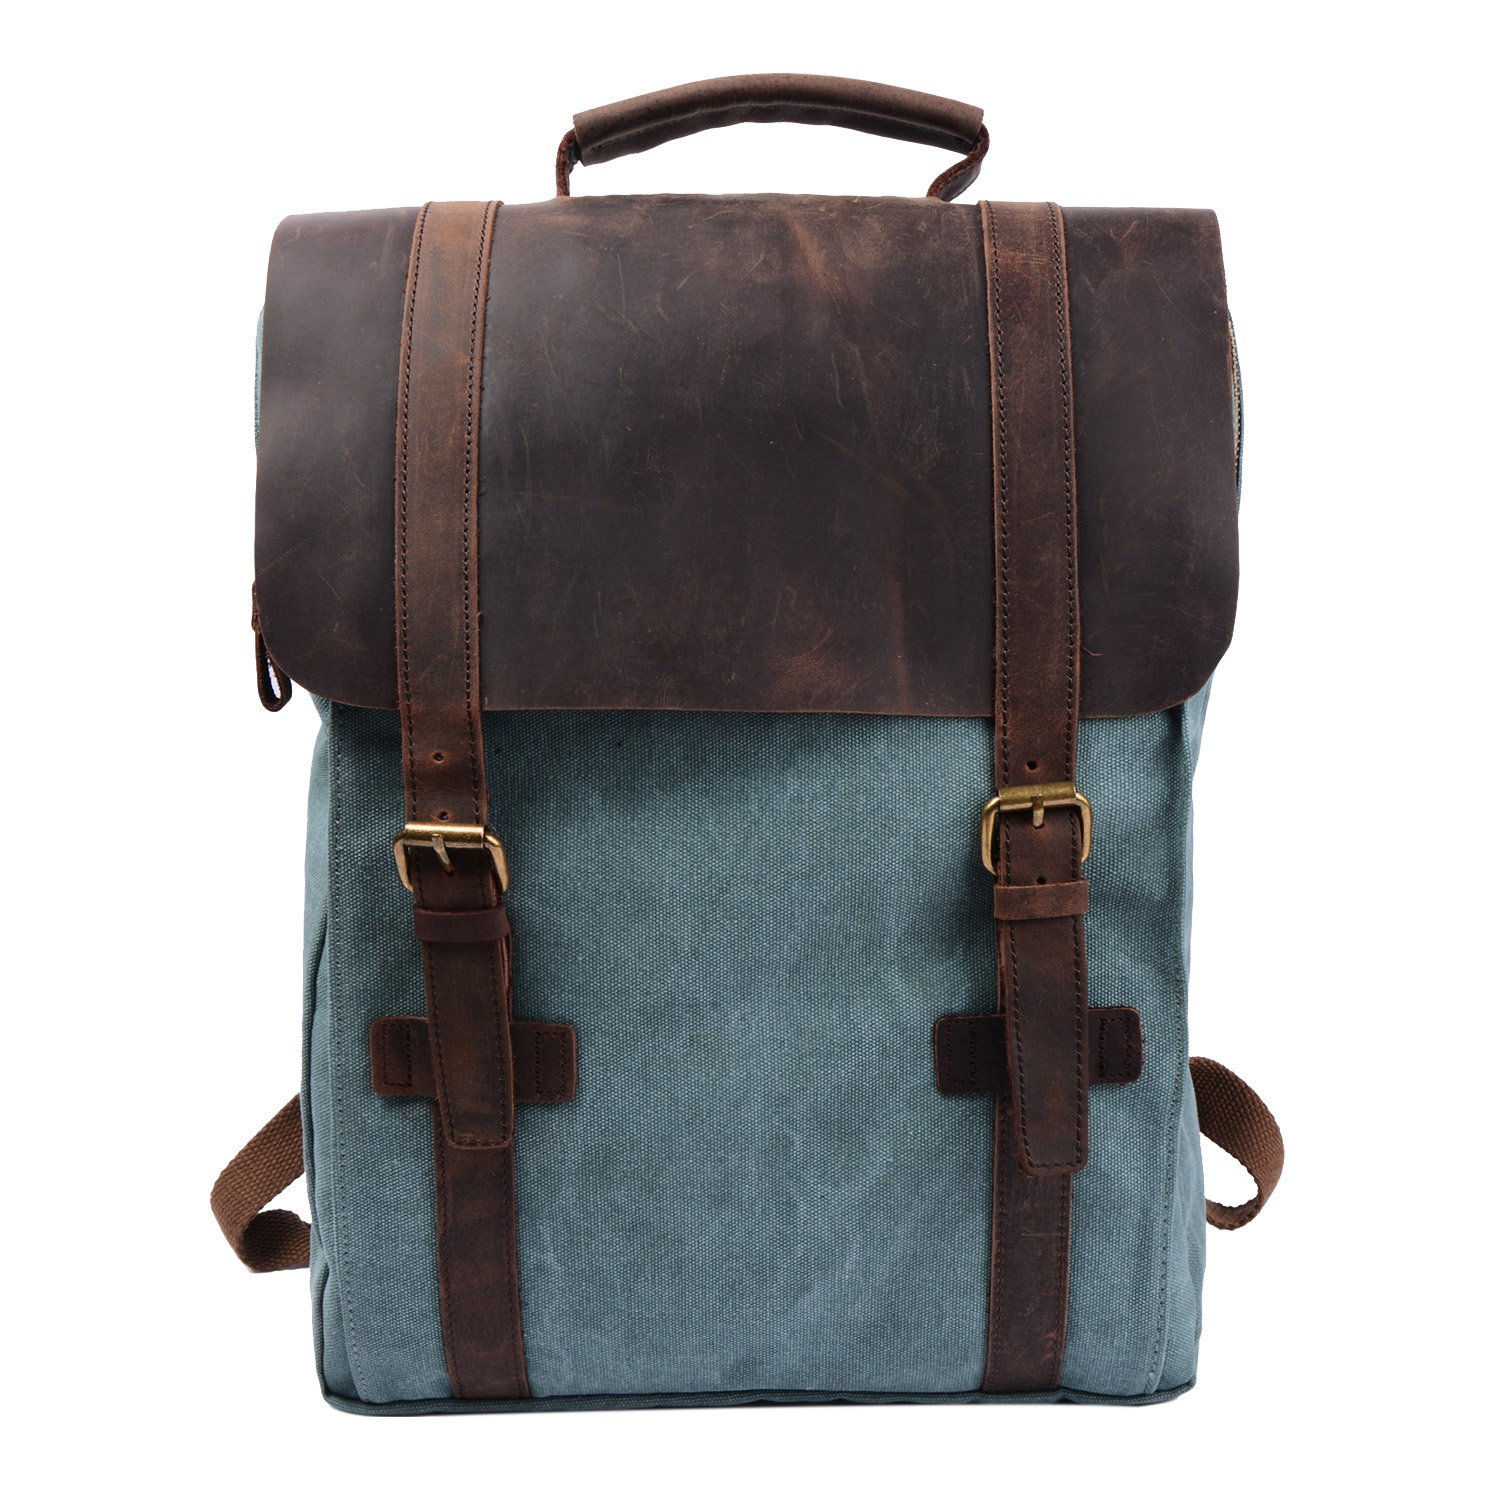 Amazon.com  S-ZONE Retro Canvas Leather School Travel Backpack Rucksack  15.6-inch Laptop Bag  Clothing b6ab882e30e6d